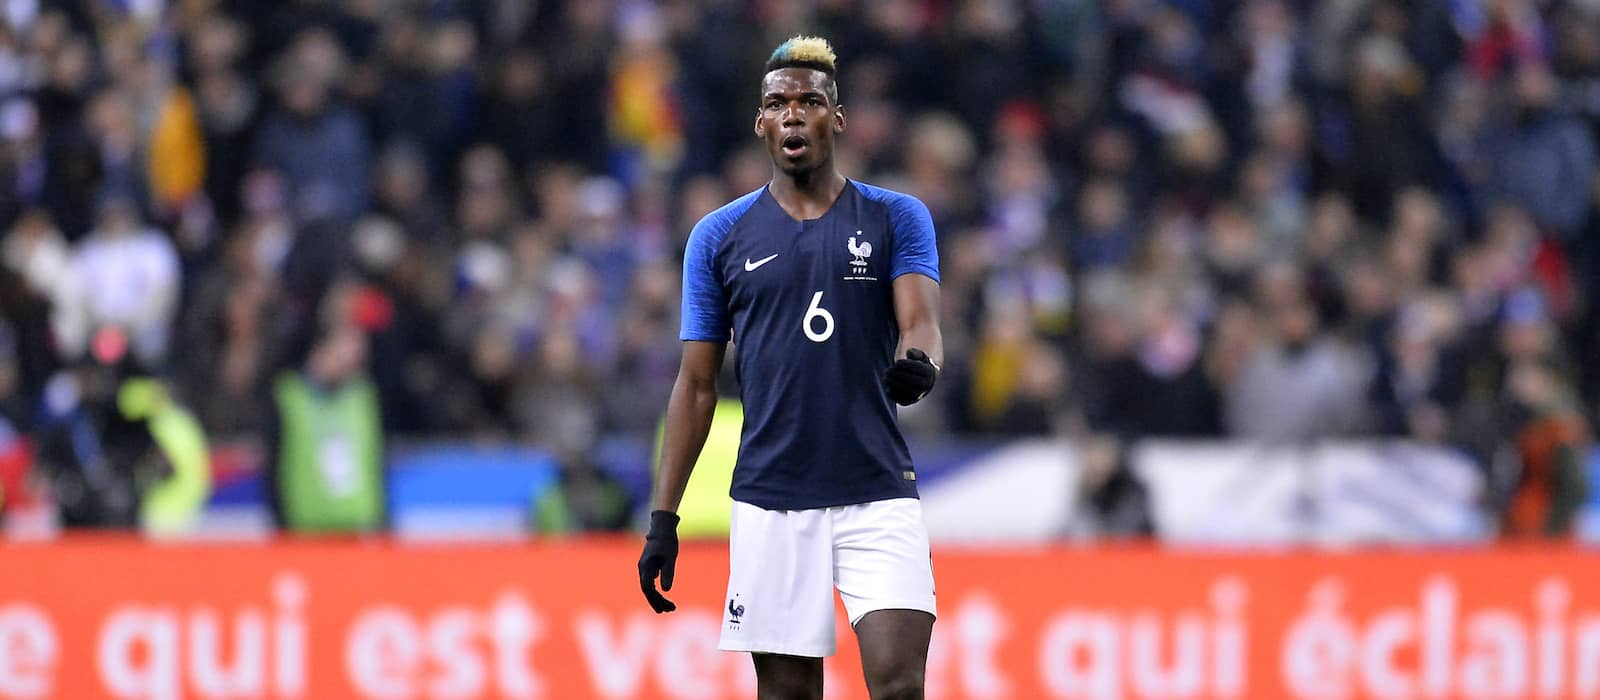 Laurent Blanc predicts bright future for Paul Pogba